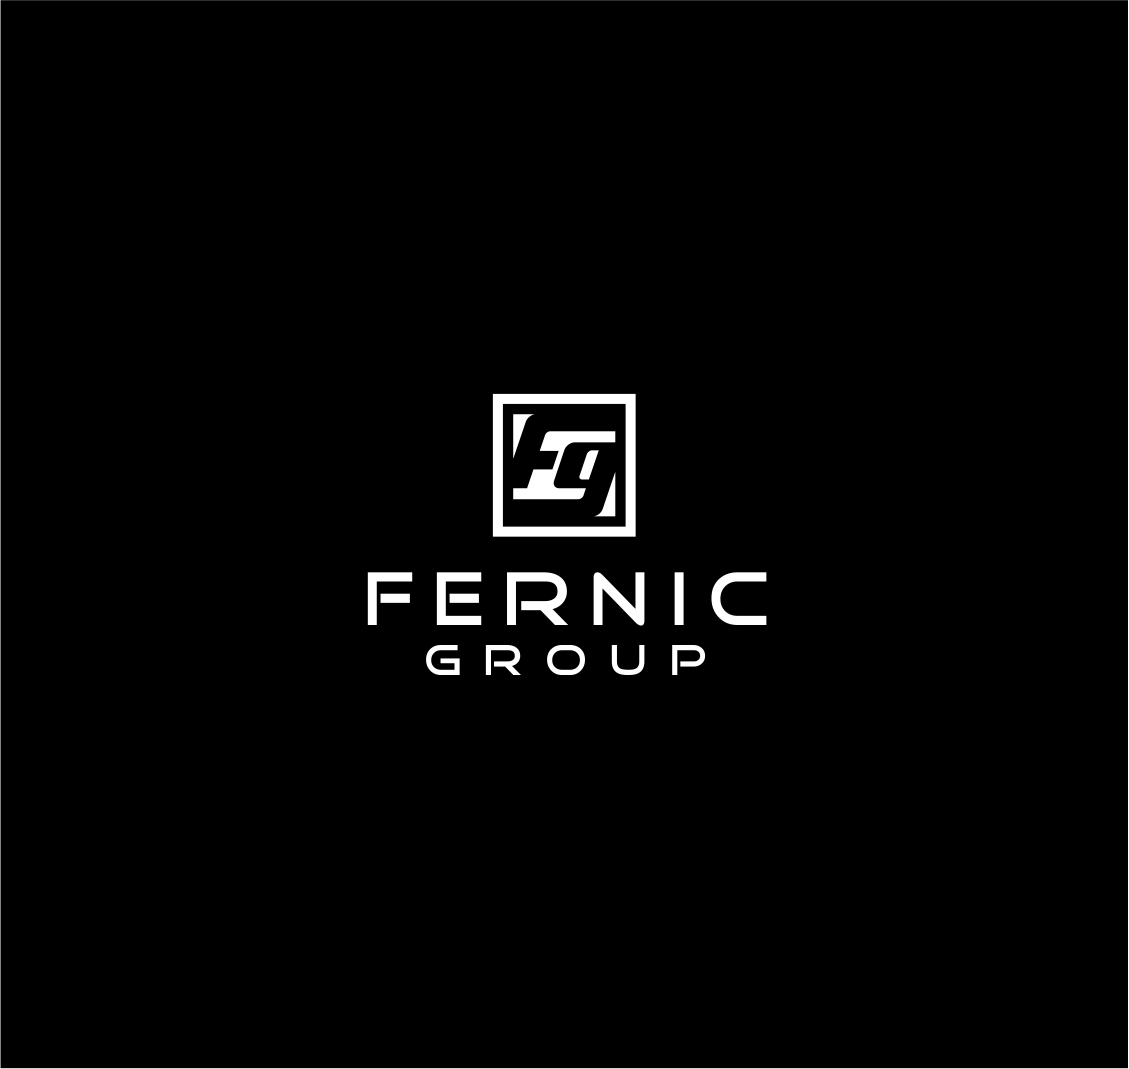 Logo Design by haidu - Entry No. 73 in the Logo Design Contest Artistic Logo Design for Fernic Goup.